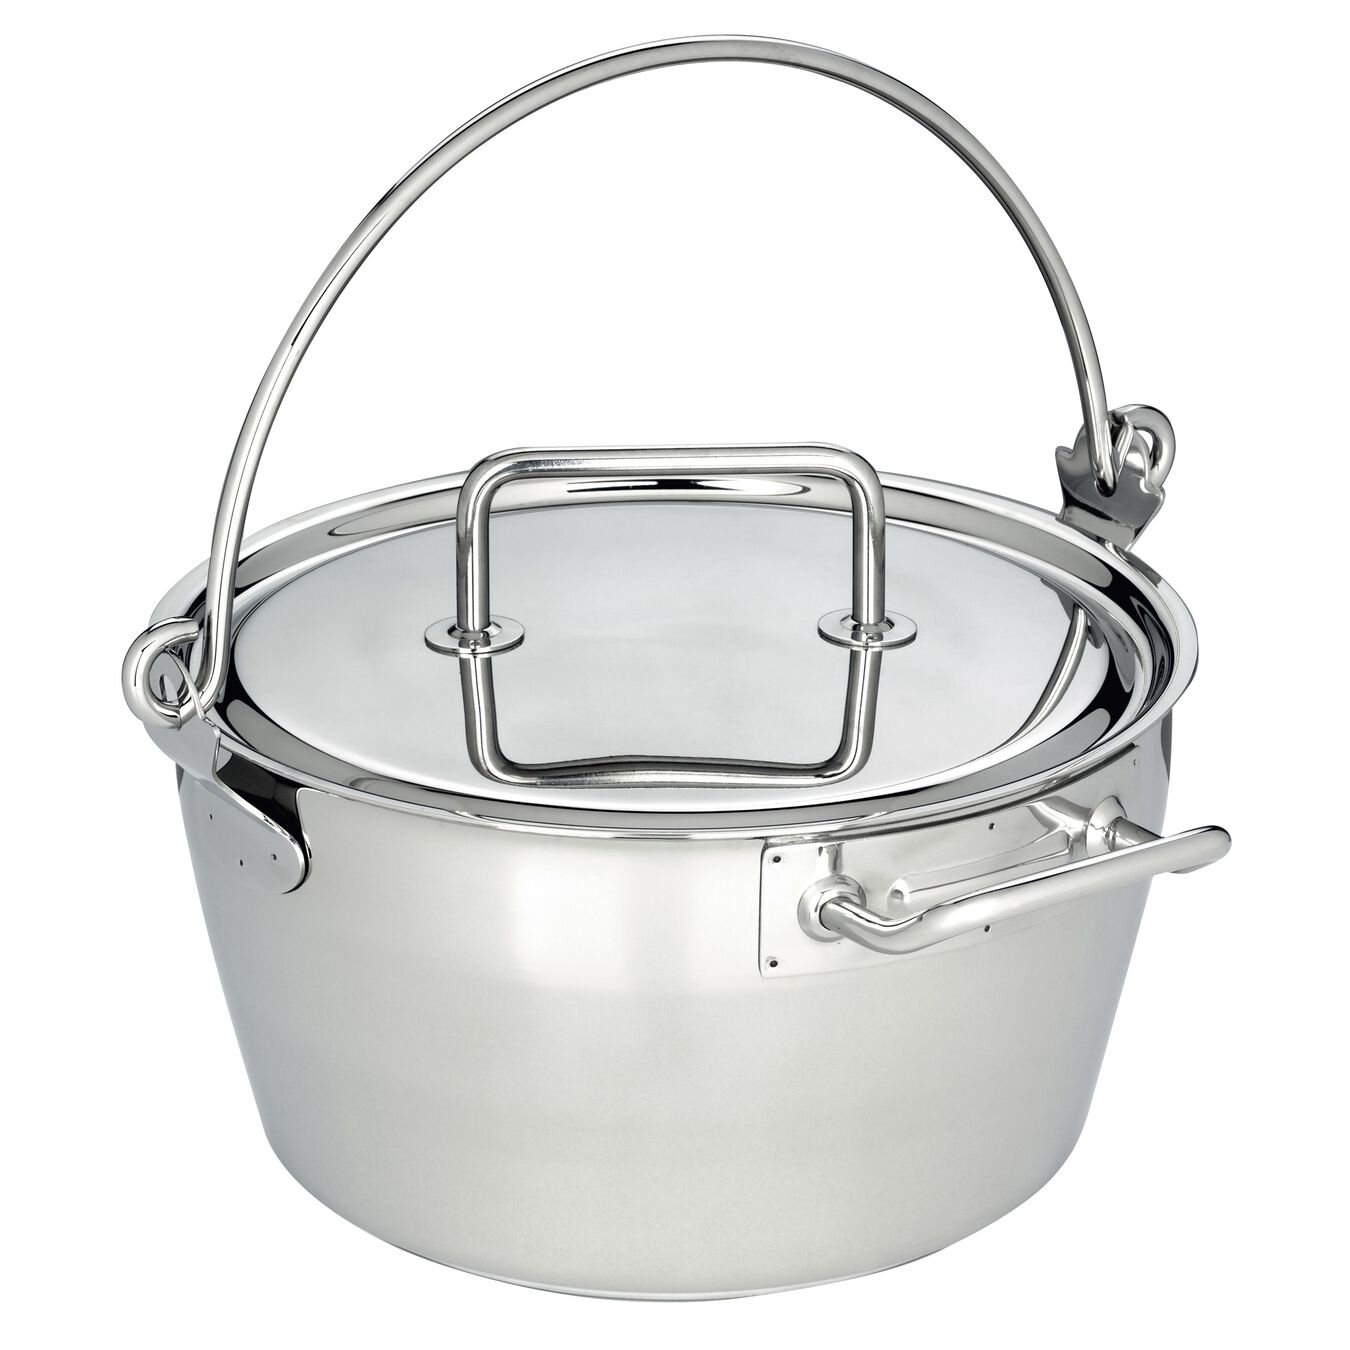 10.6-qt Stainless Steel Maslin Pan,,large 1